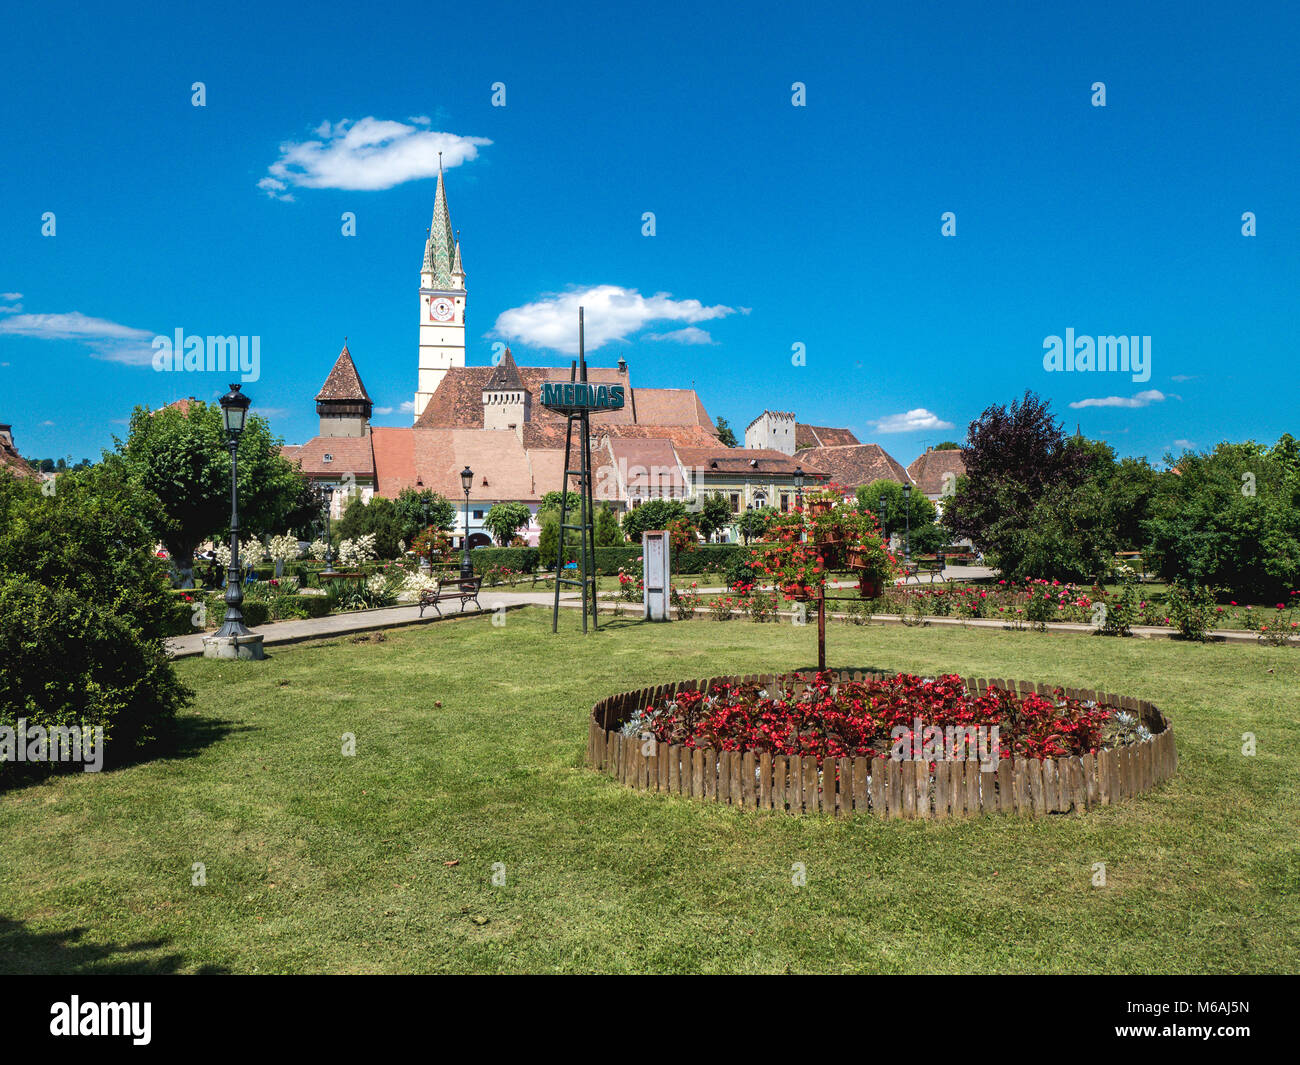 Medias Romania city symbol. Old saxon Cathedral clock tower in the city main square - Stock Image